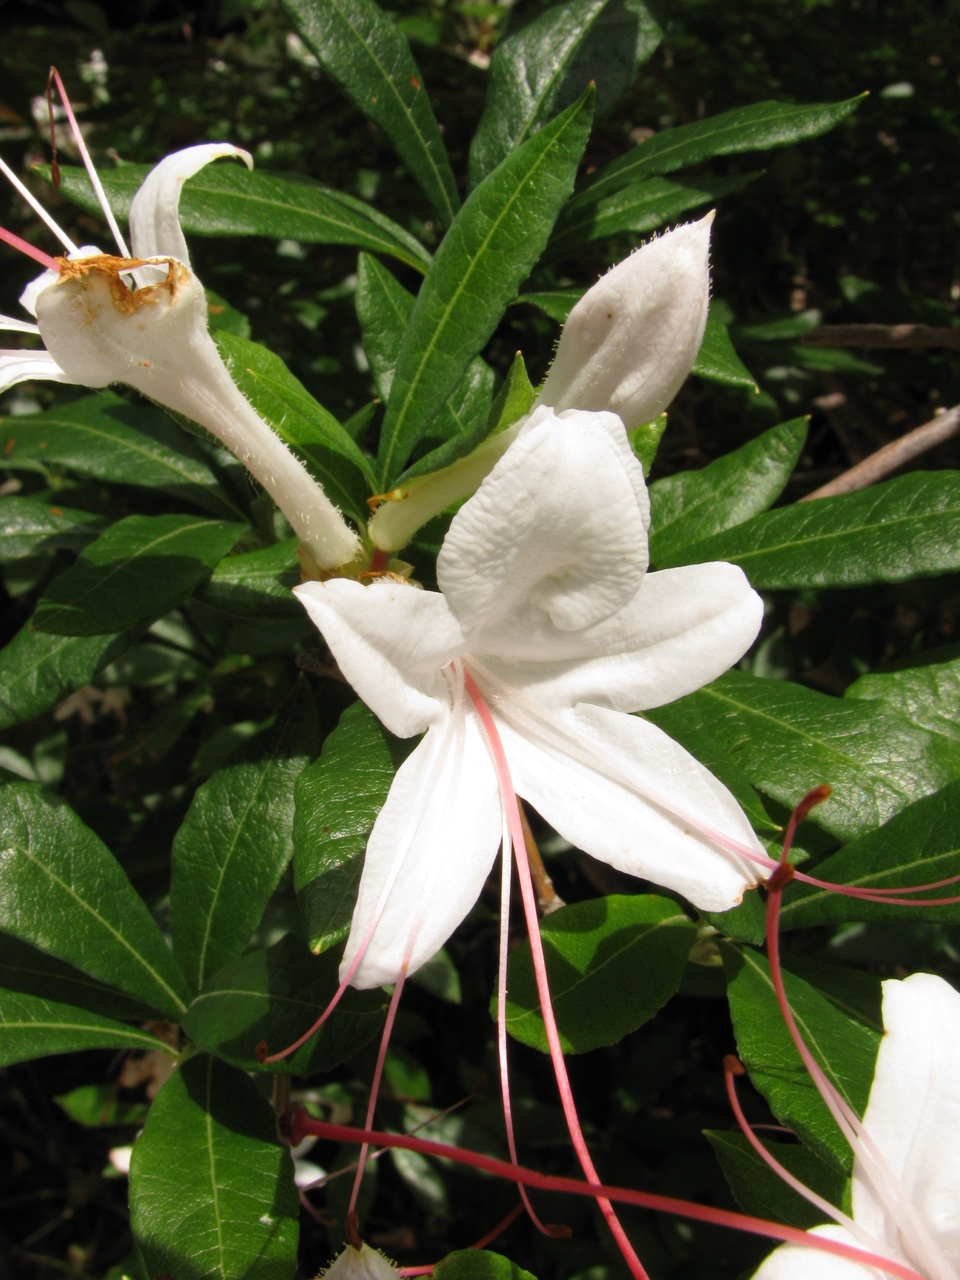 The Scientific Name is Rhododendron arborescens [= Azalea arborescens]. You will likely hear them called Smooth Azalea, Sweet Azalea. This picture shows the Notice the very dark green and shiny leaves of Rhododendron arborescens [= Azalea arborescens]